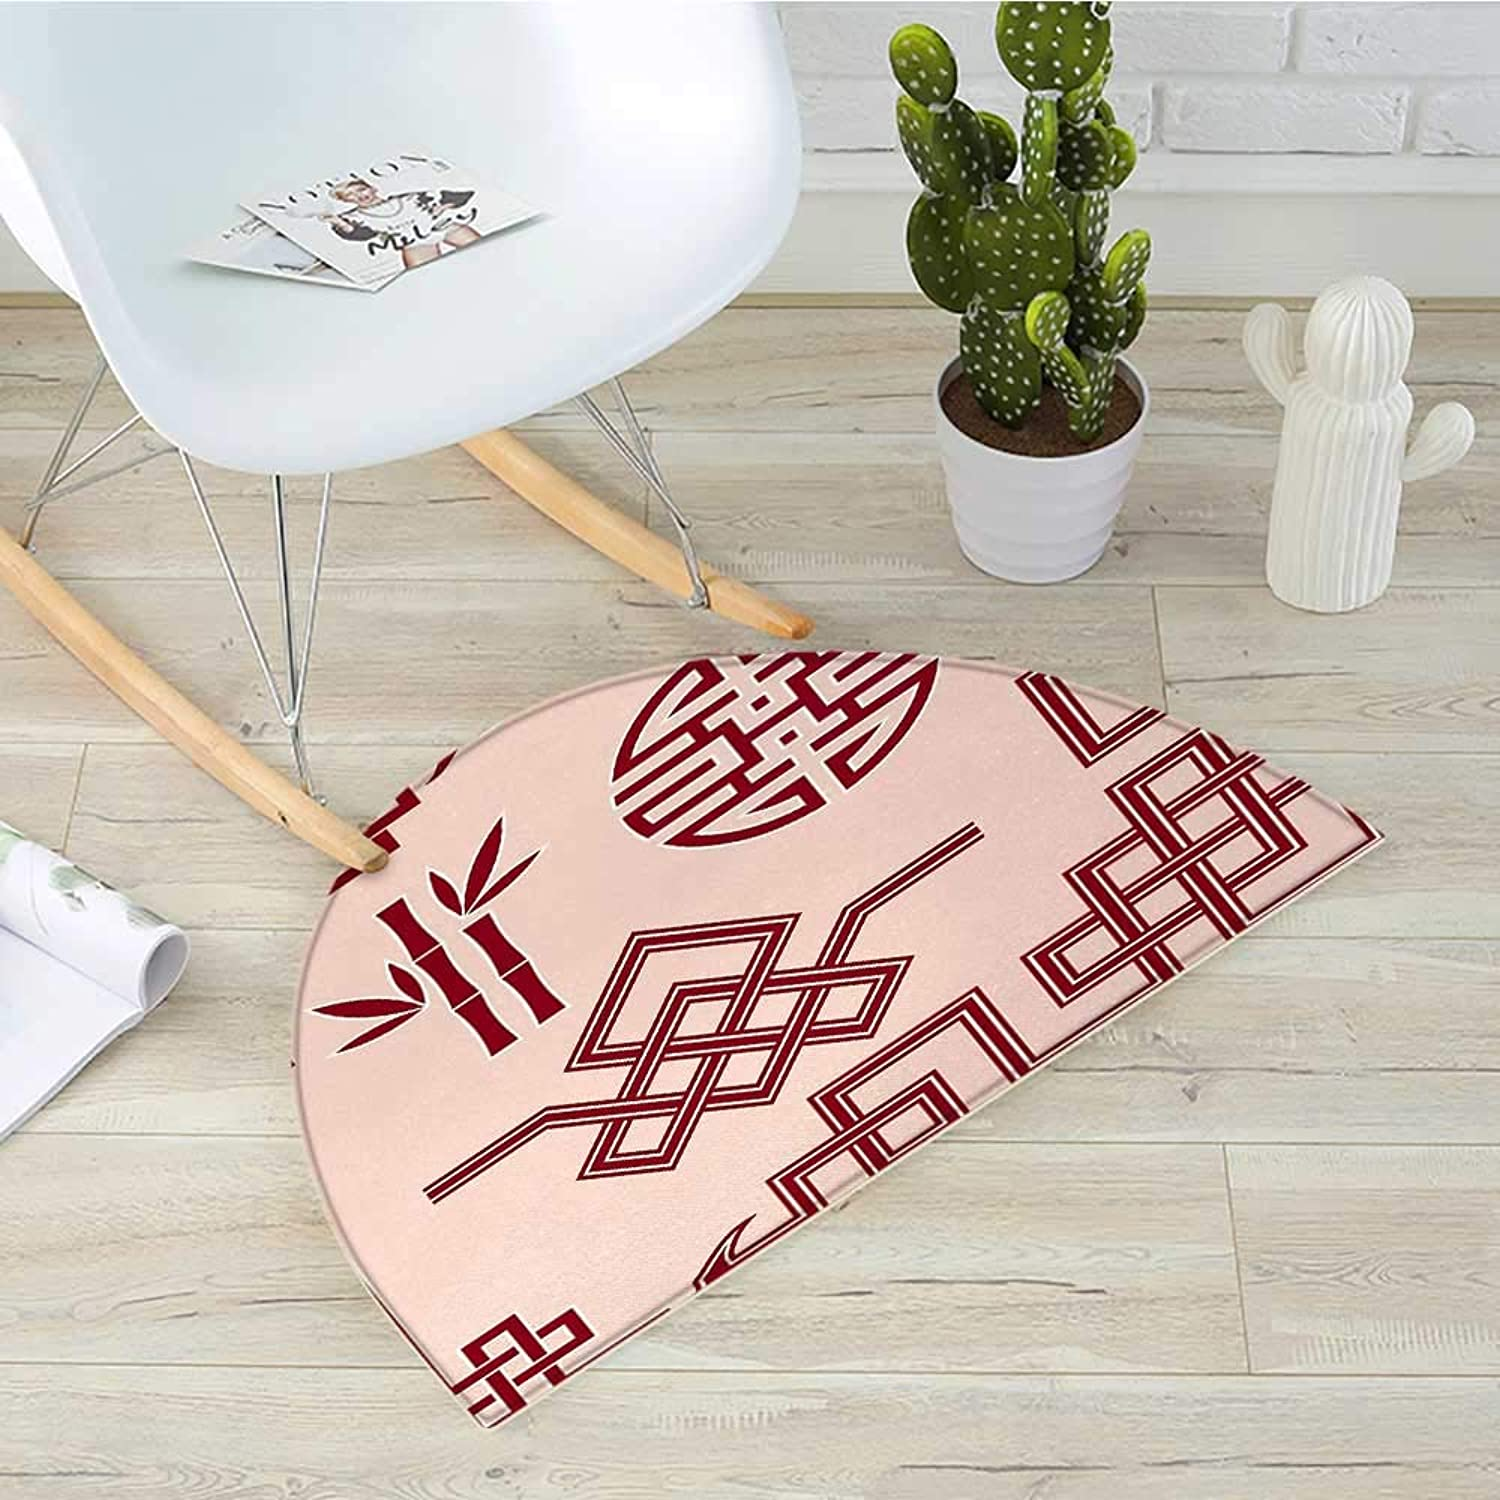 Asian Semicircular CushionSet of Oriental Design Elements Traditional Eastern Knot and Bamboo Framework Entry Door Mat H 31.5  xD 47.2  Peach and Ruby